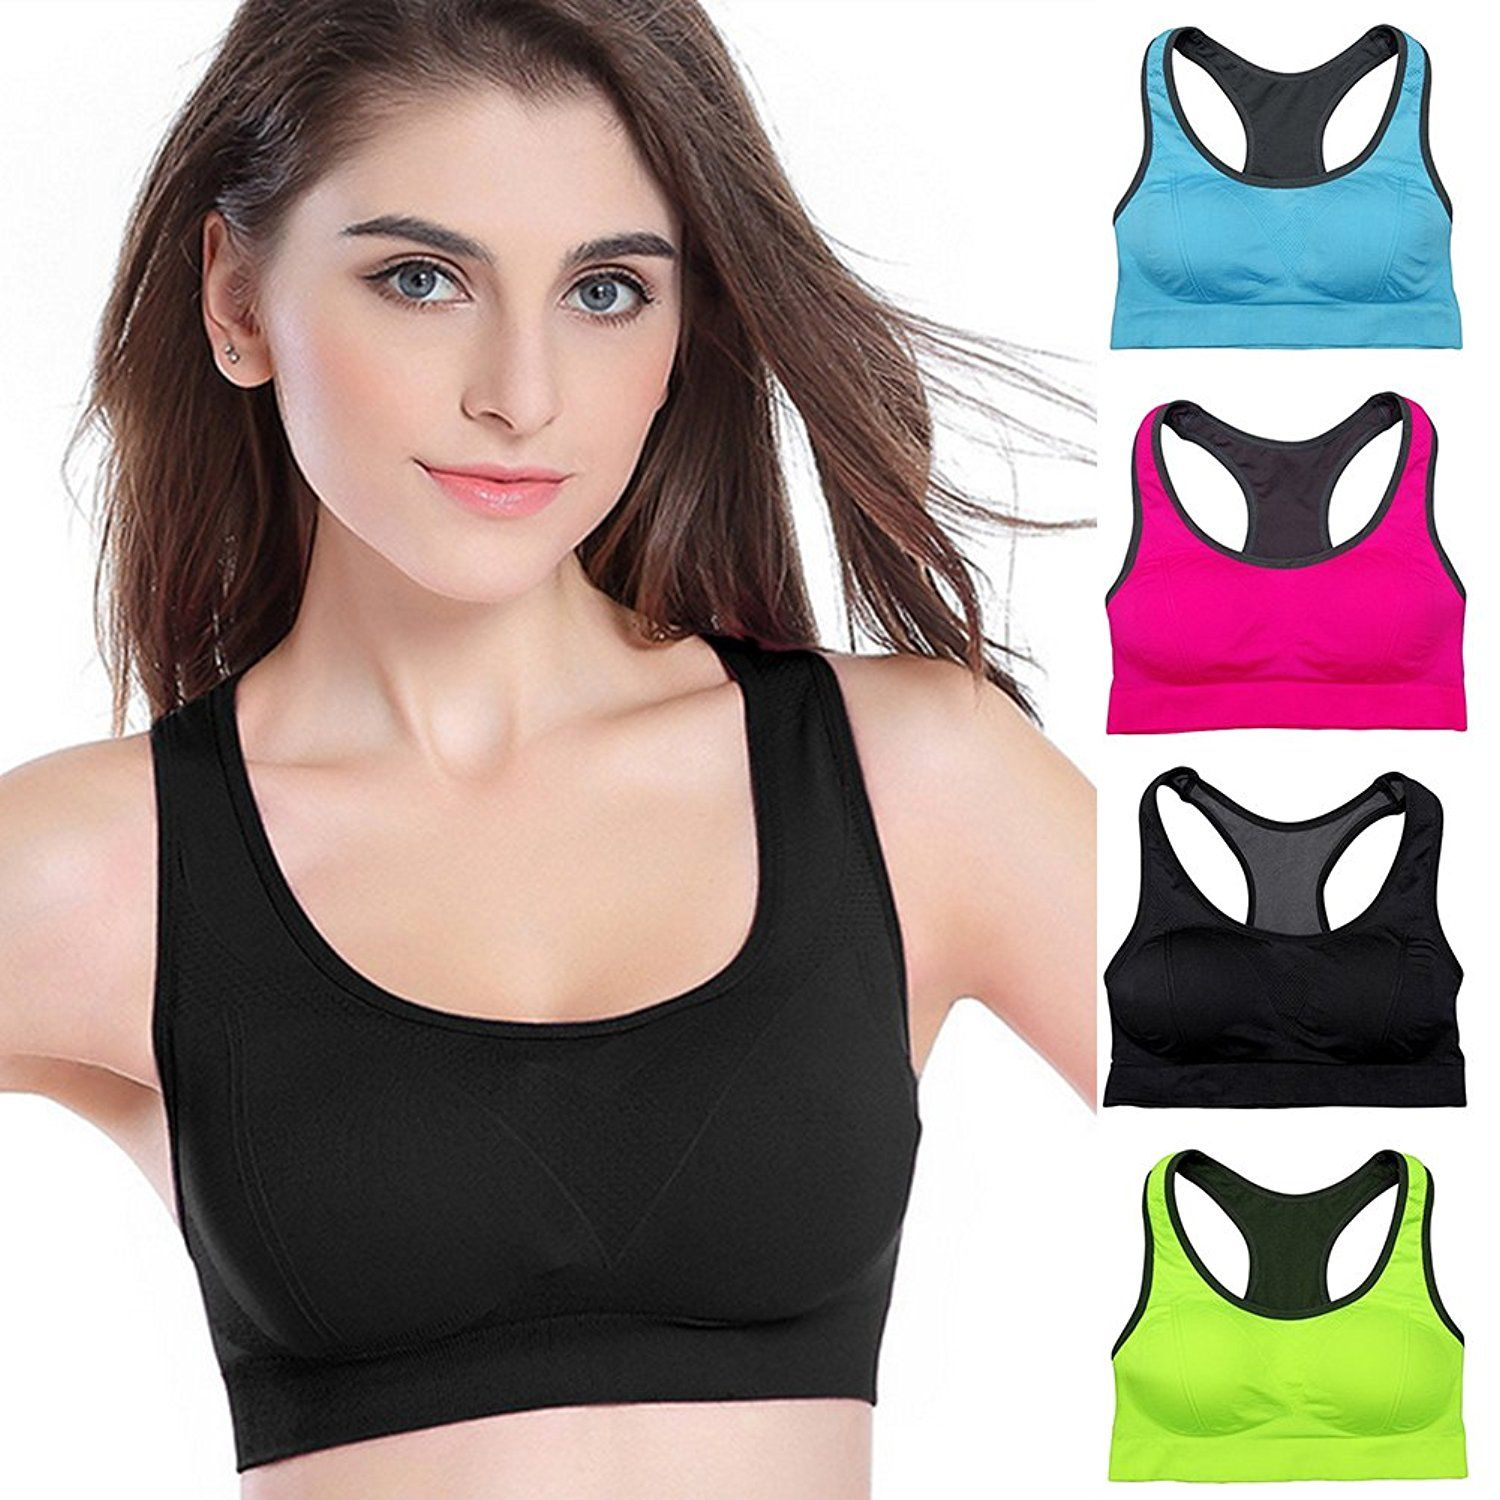 287c12d5d Padded Sports Bras Wire Free High Impact Support Seamless Yoga bra Price    6.99